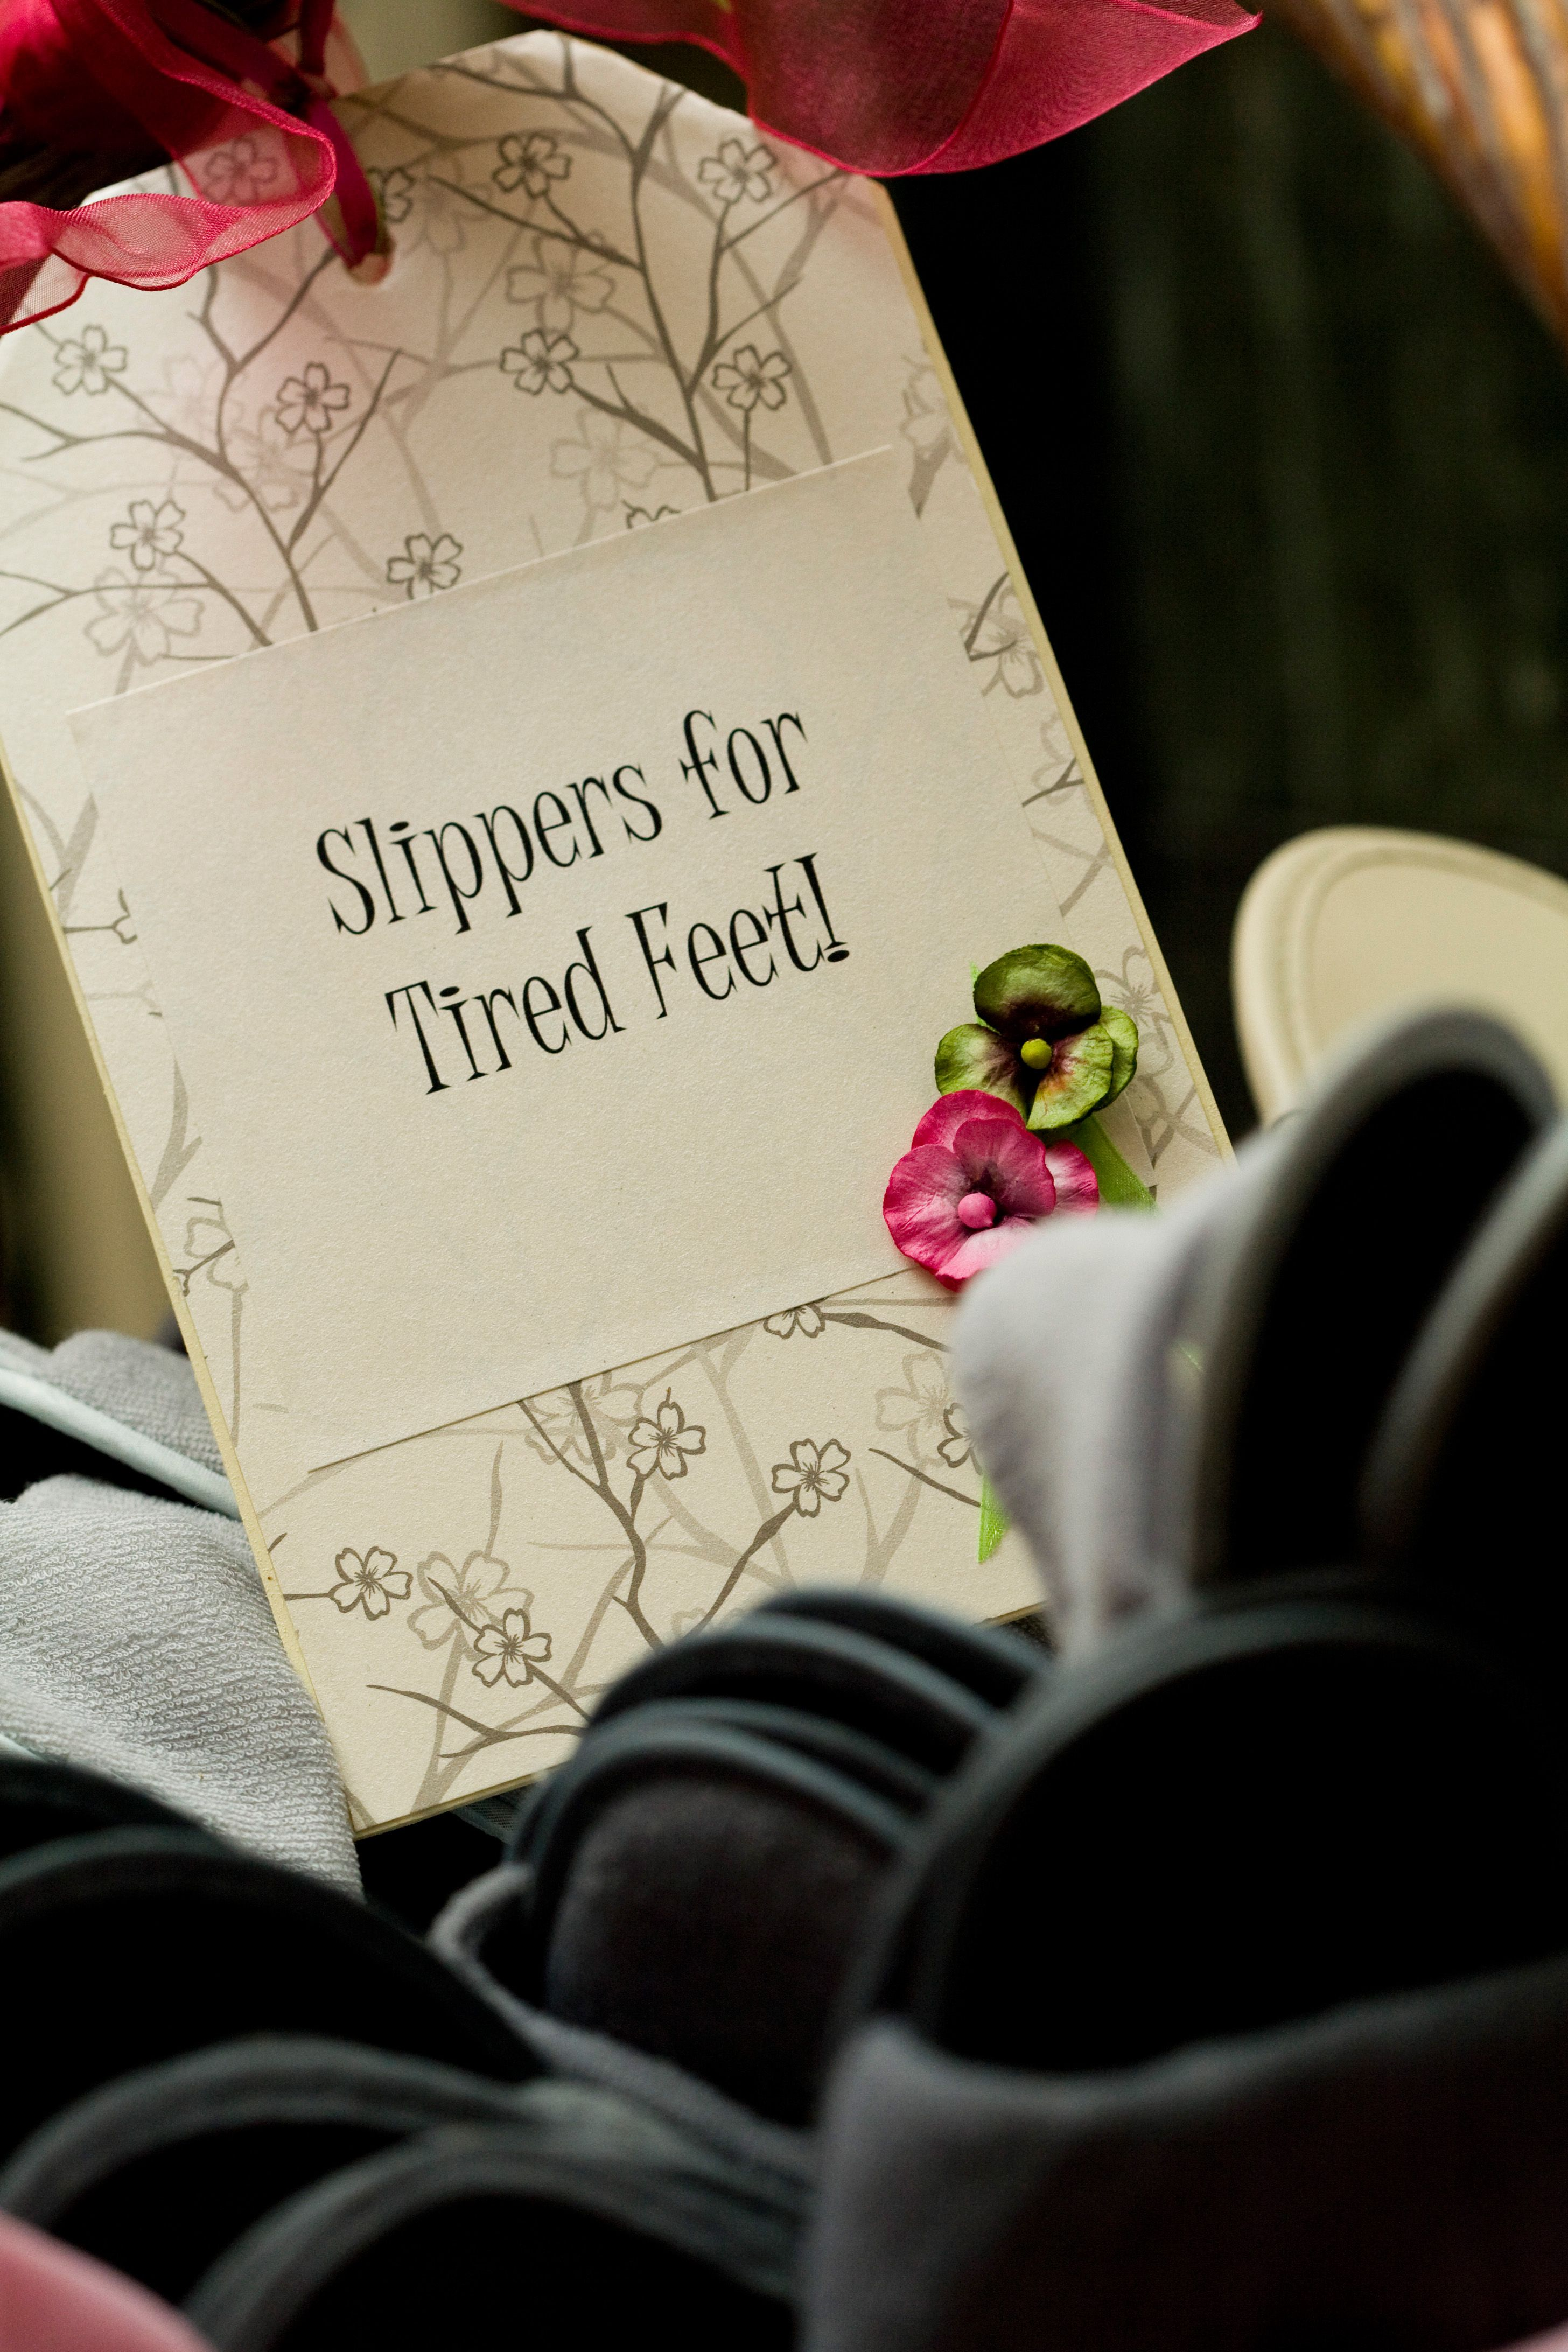 Love this idea! Providing slippers for guests with \